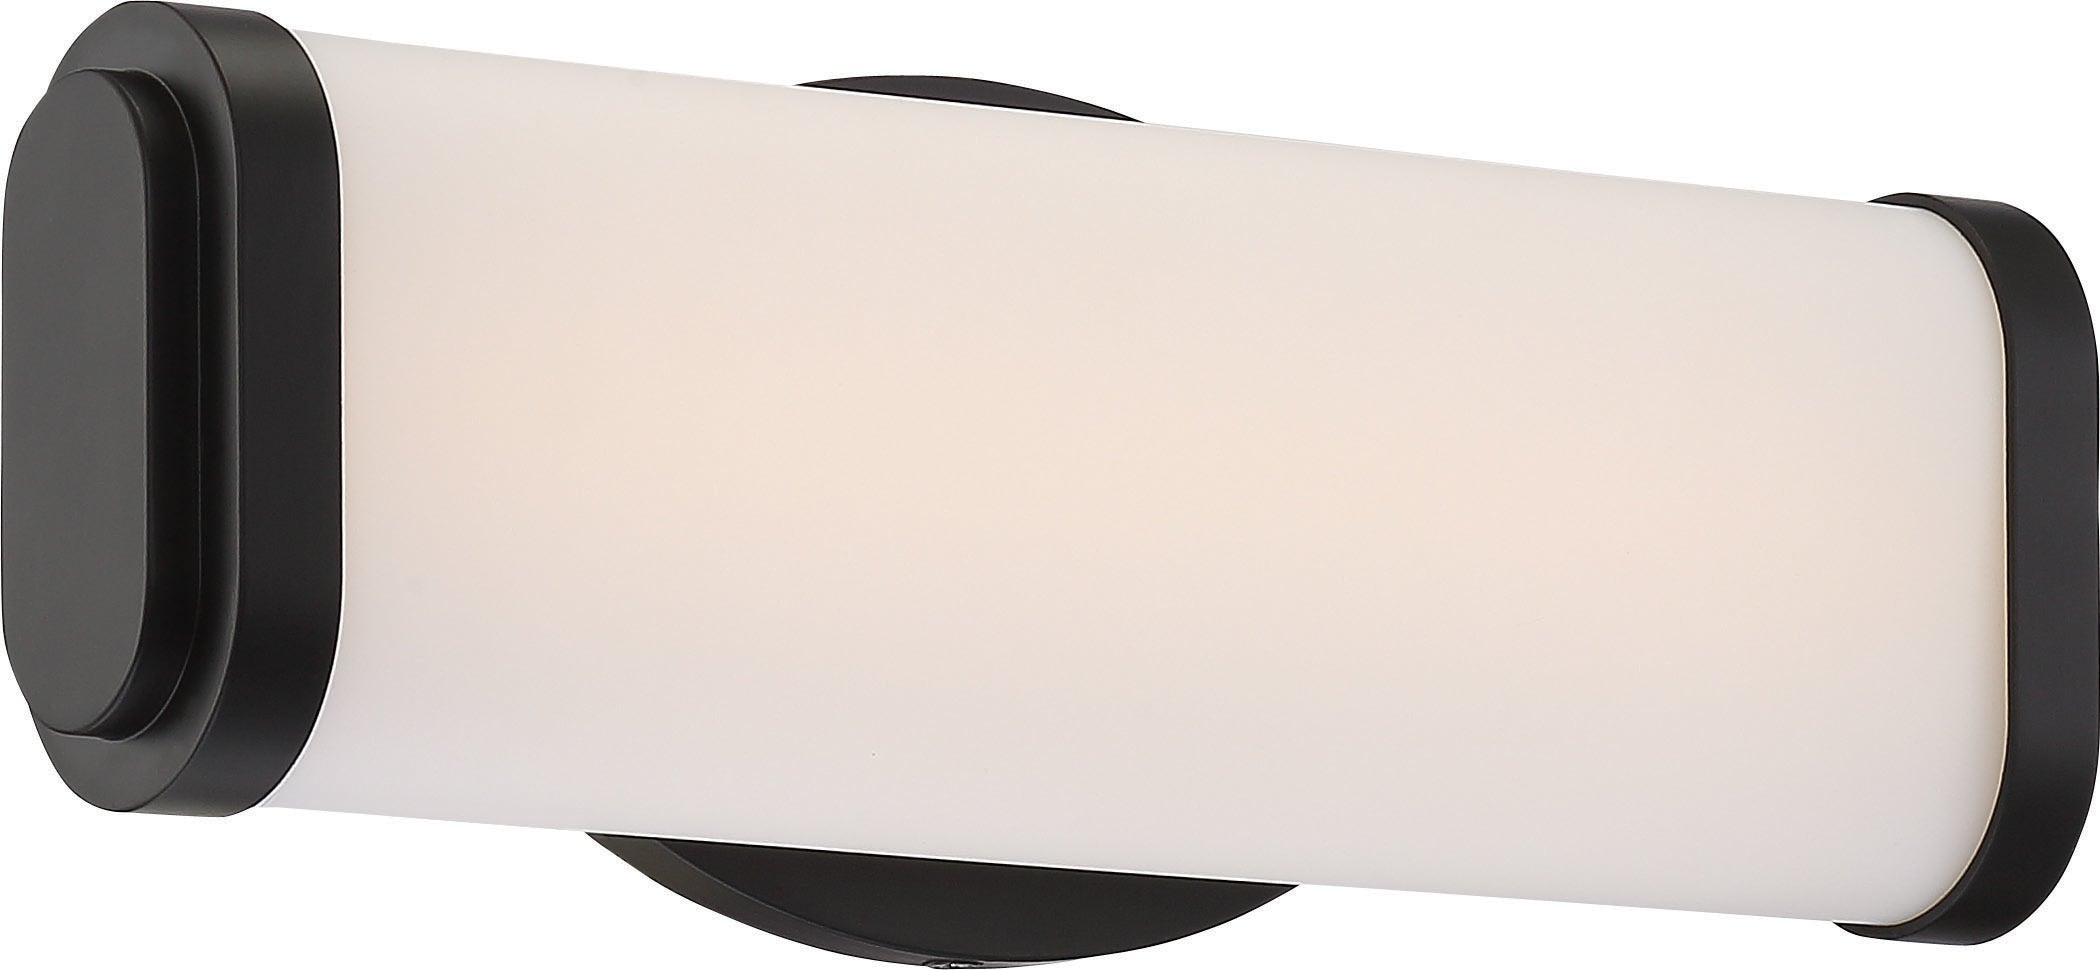 """Nuvo Pace 1-Light 12"""" Single Wall Sconce Vanity & Wall Fixture In Aged Bronze"""